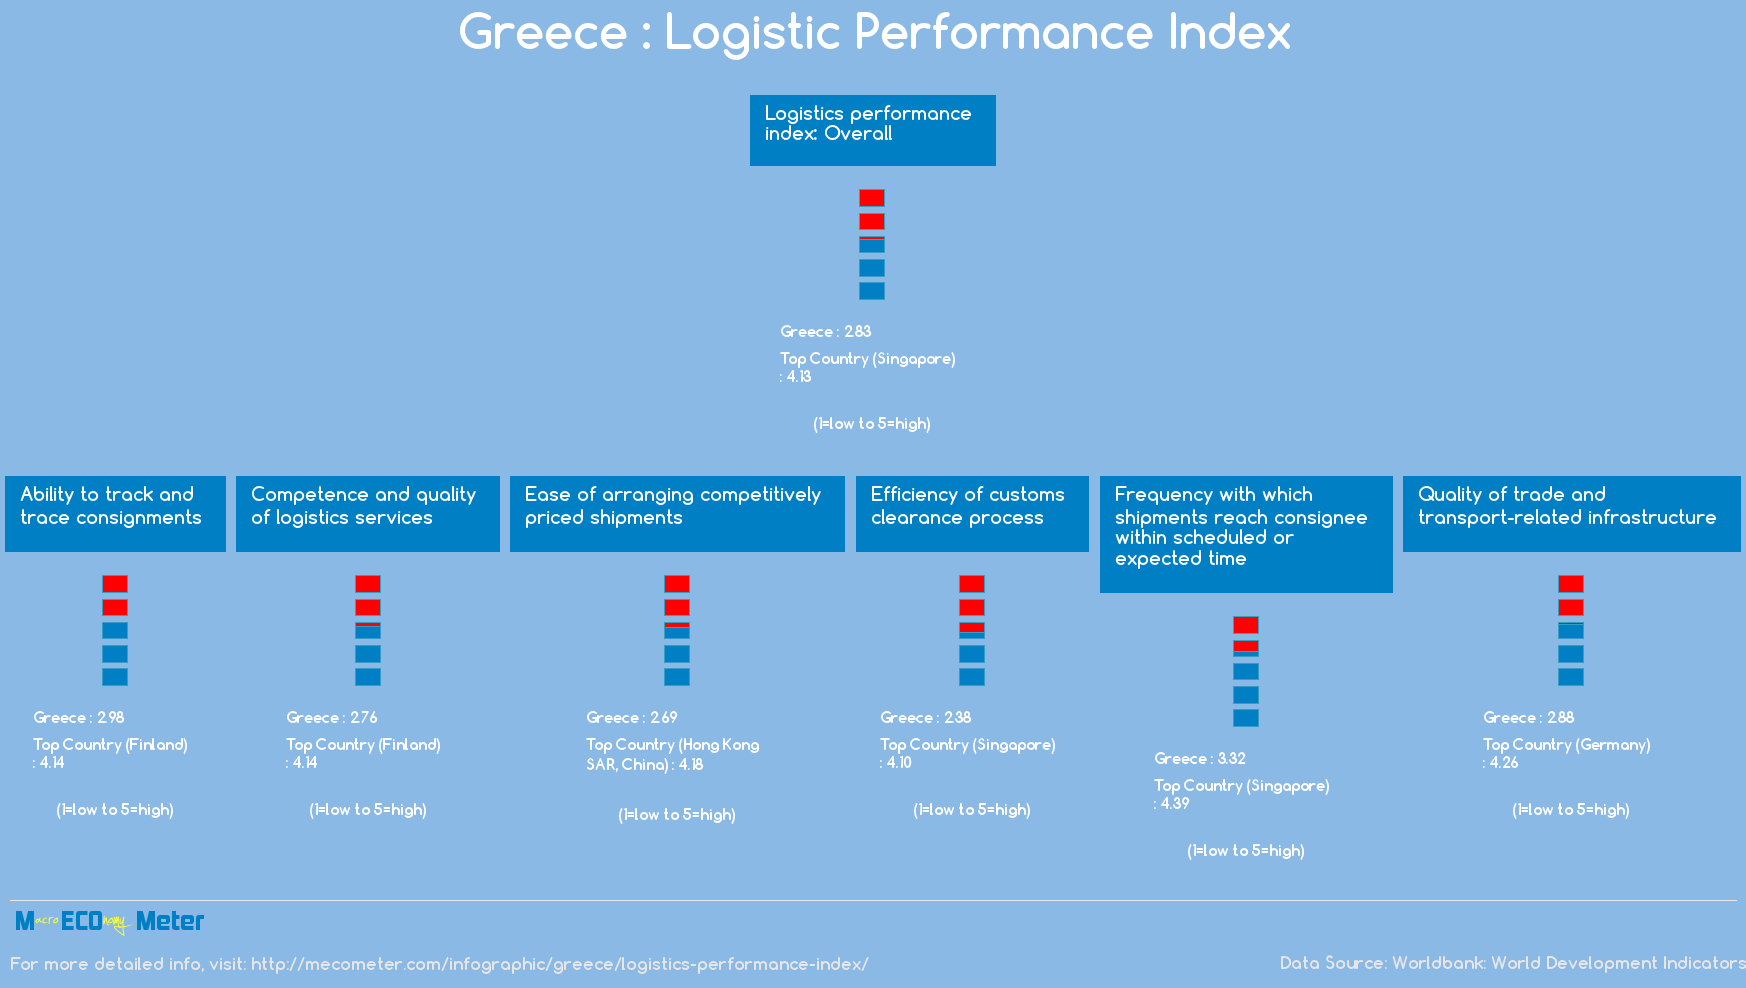 Greece : Logistic Performance Index